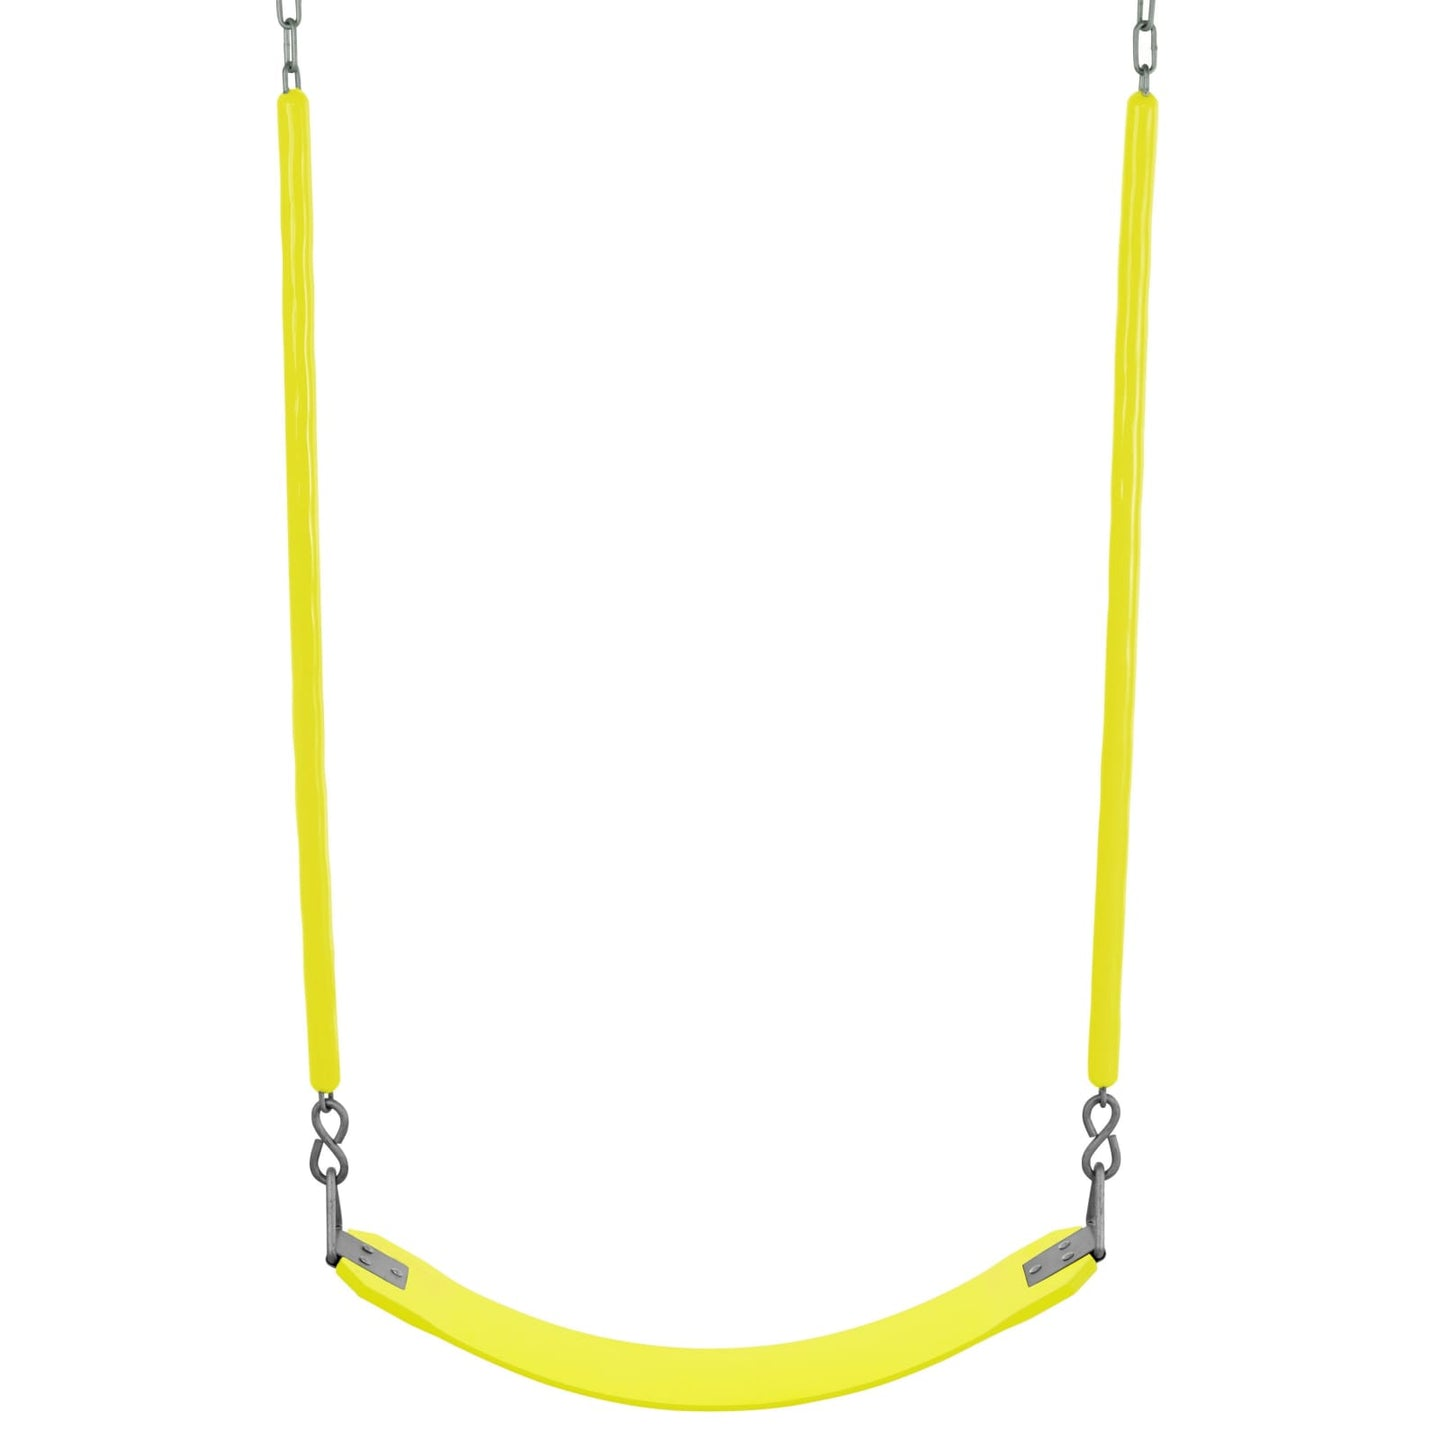 Swingan - Belt Swing For All Ages - Yellow - SW27CS-YL - Swings & Accessories